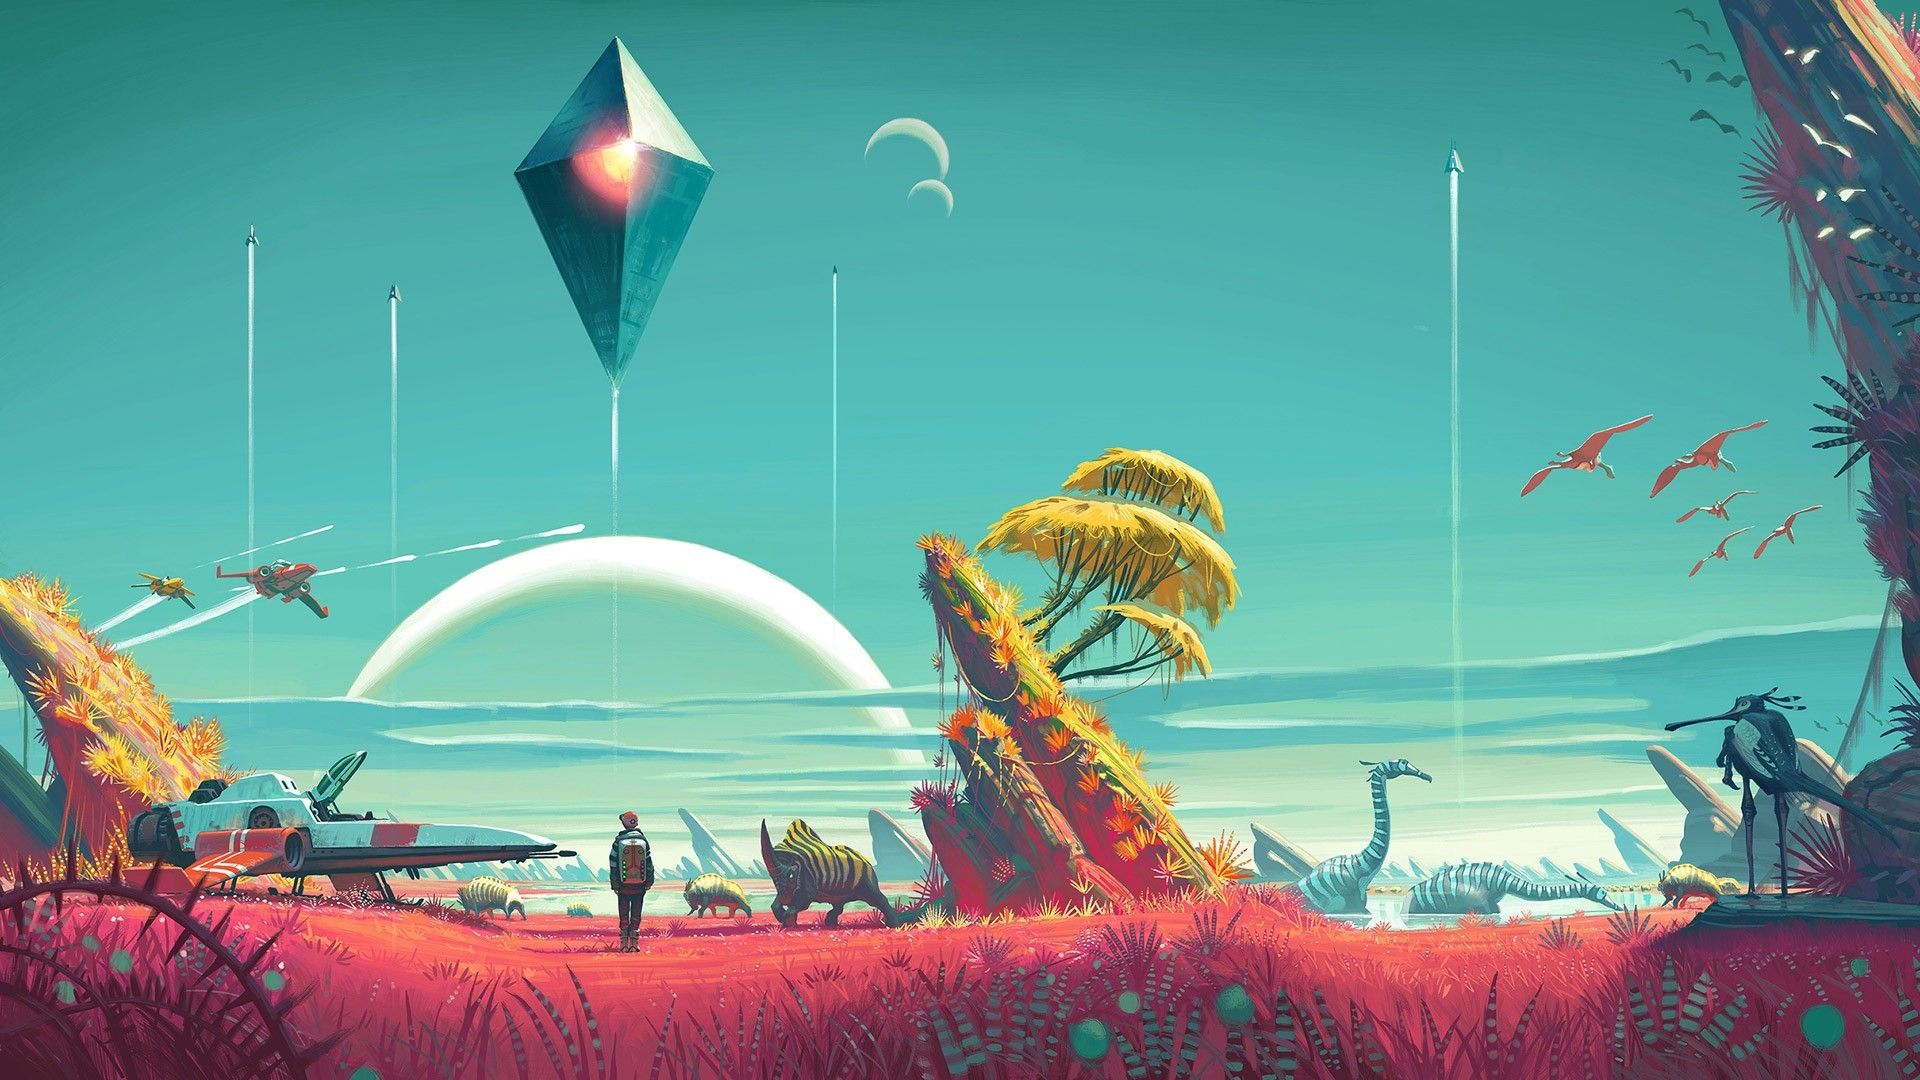 No Mans Sky Wallpapers Hd Dogwallpapers Proyectos Y Lugares